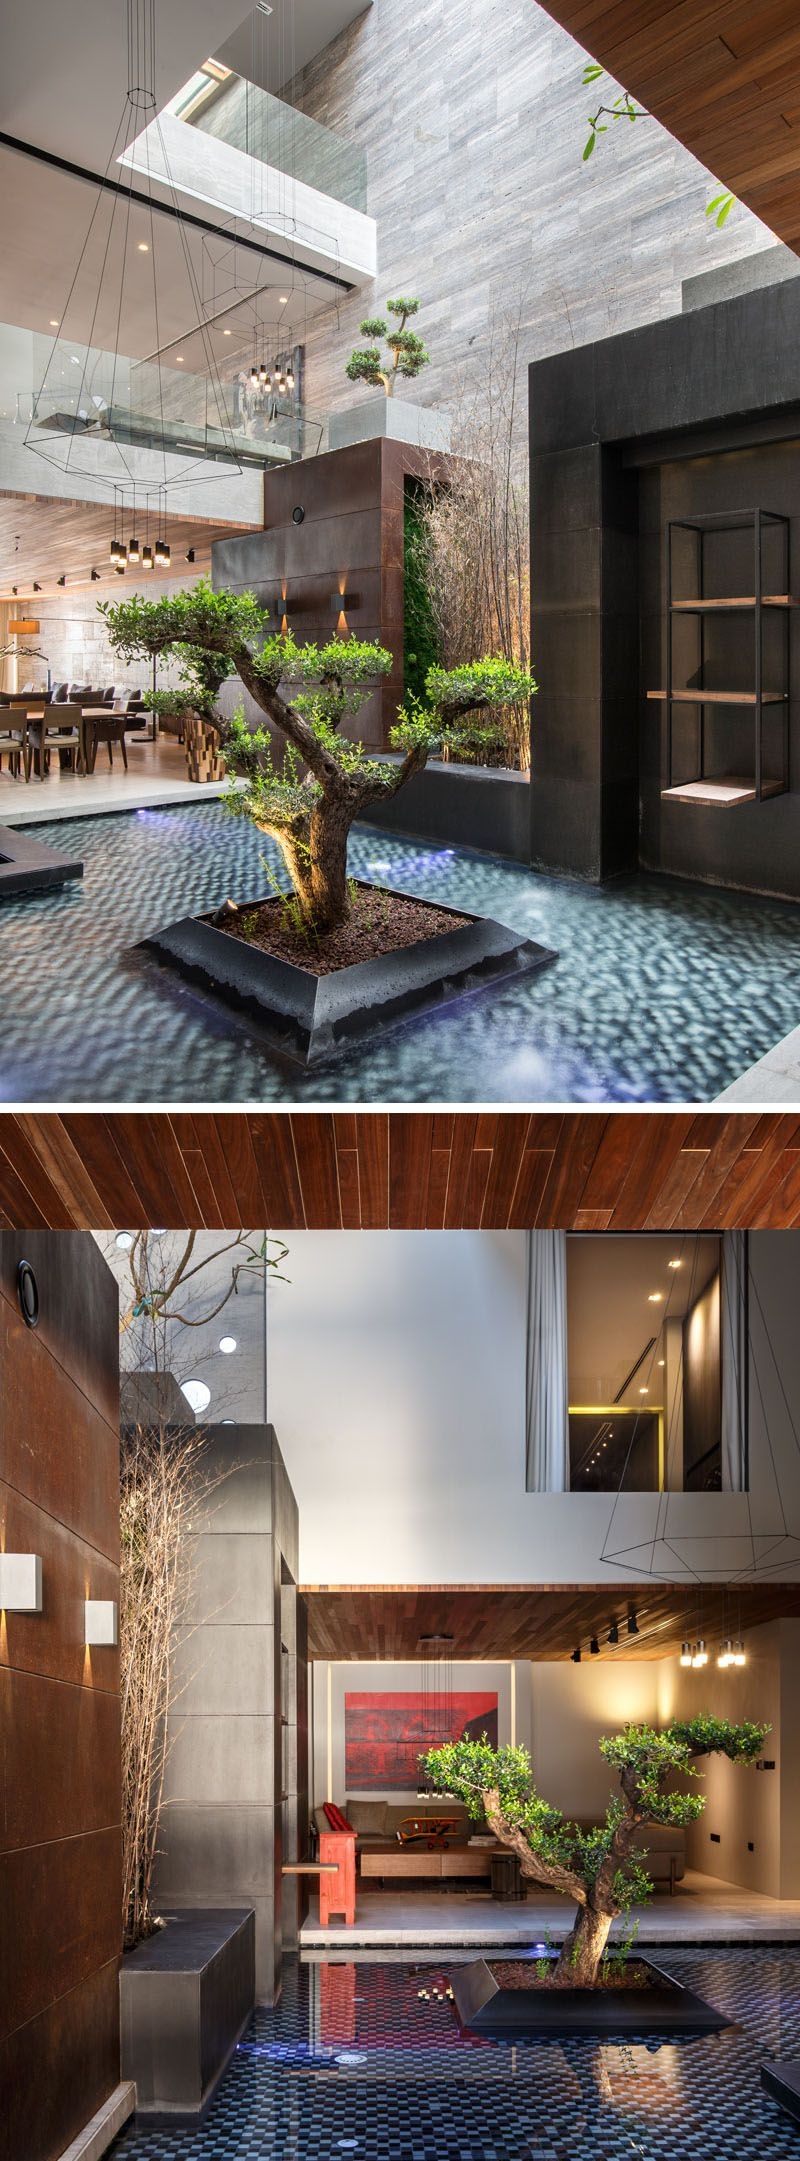 Internal Affairs Interior Designers: The Design Of This Modern House Placed A Priority On Its